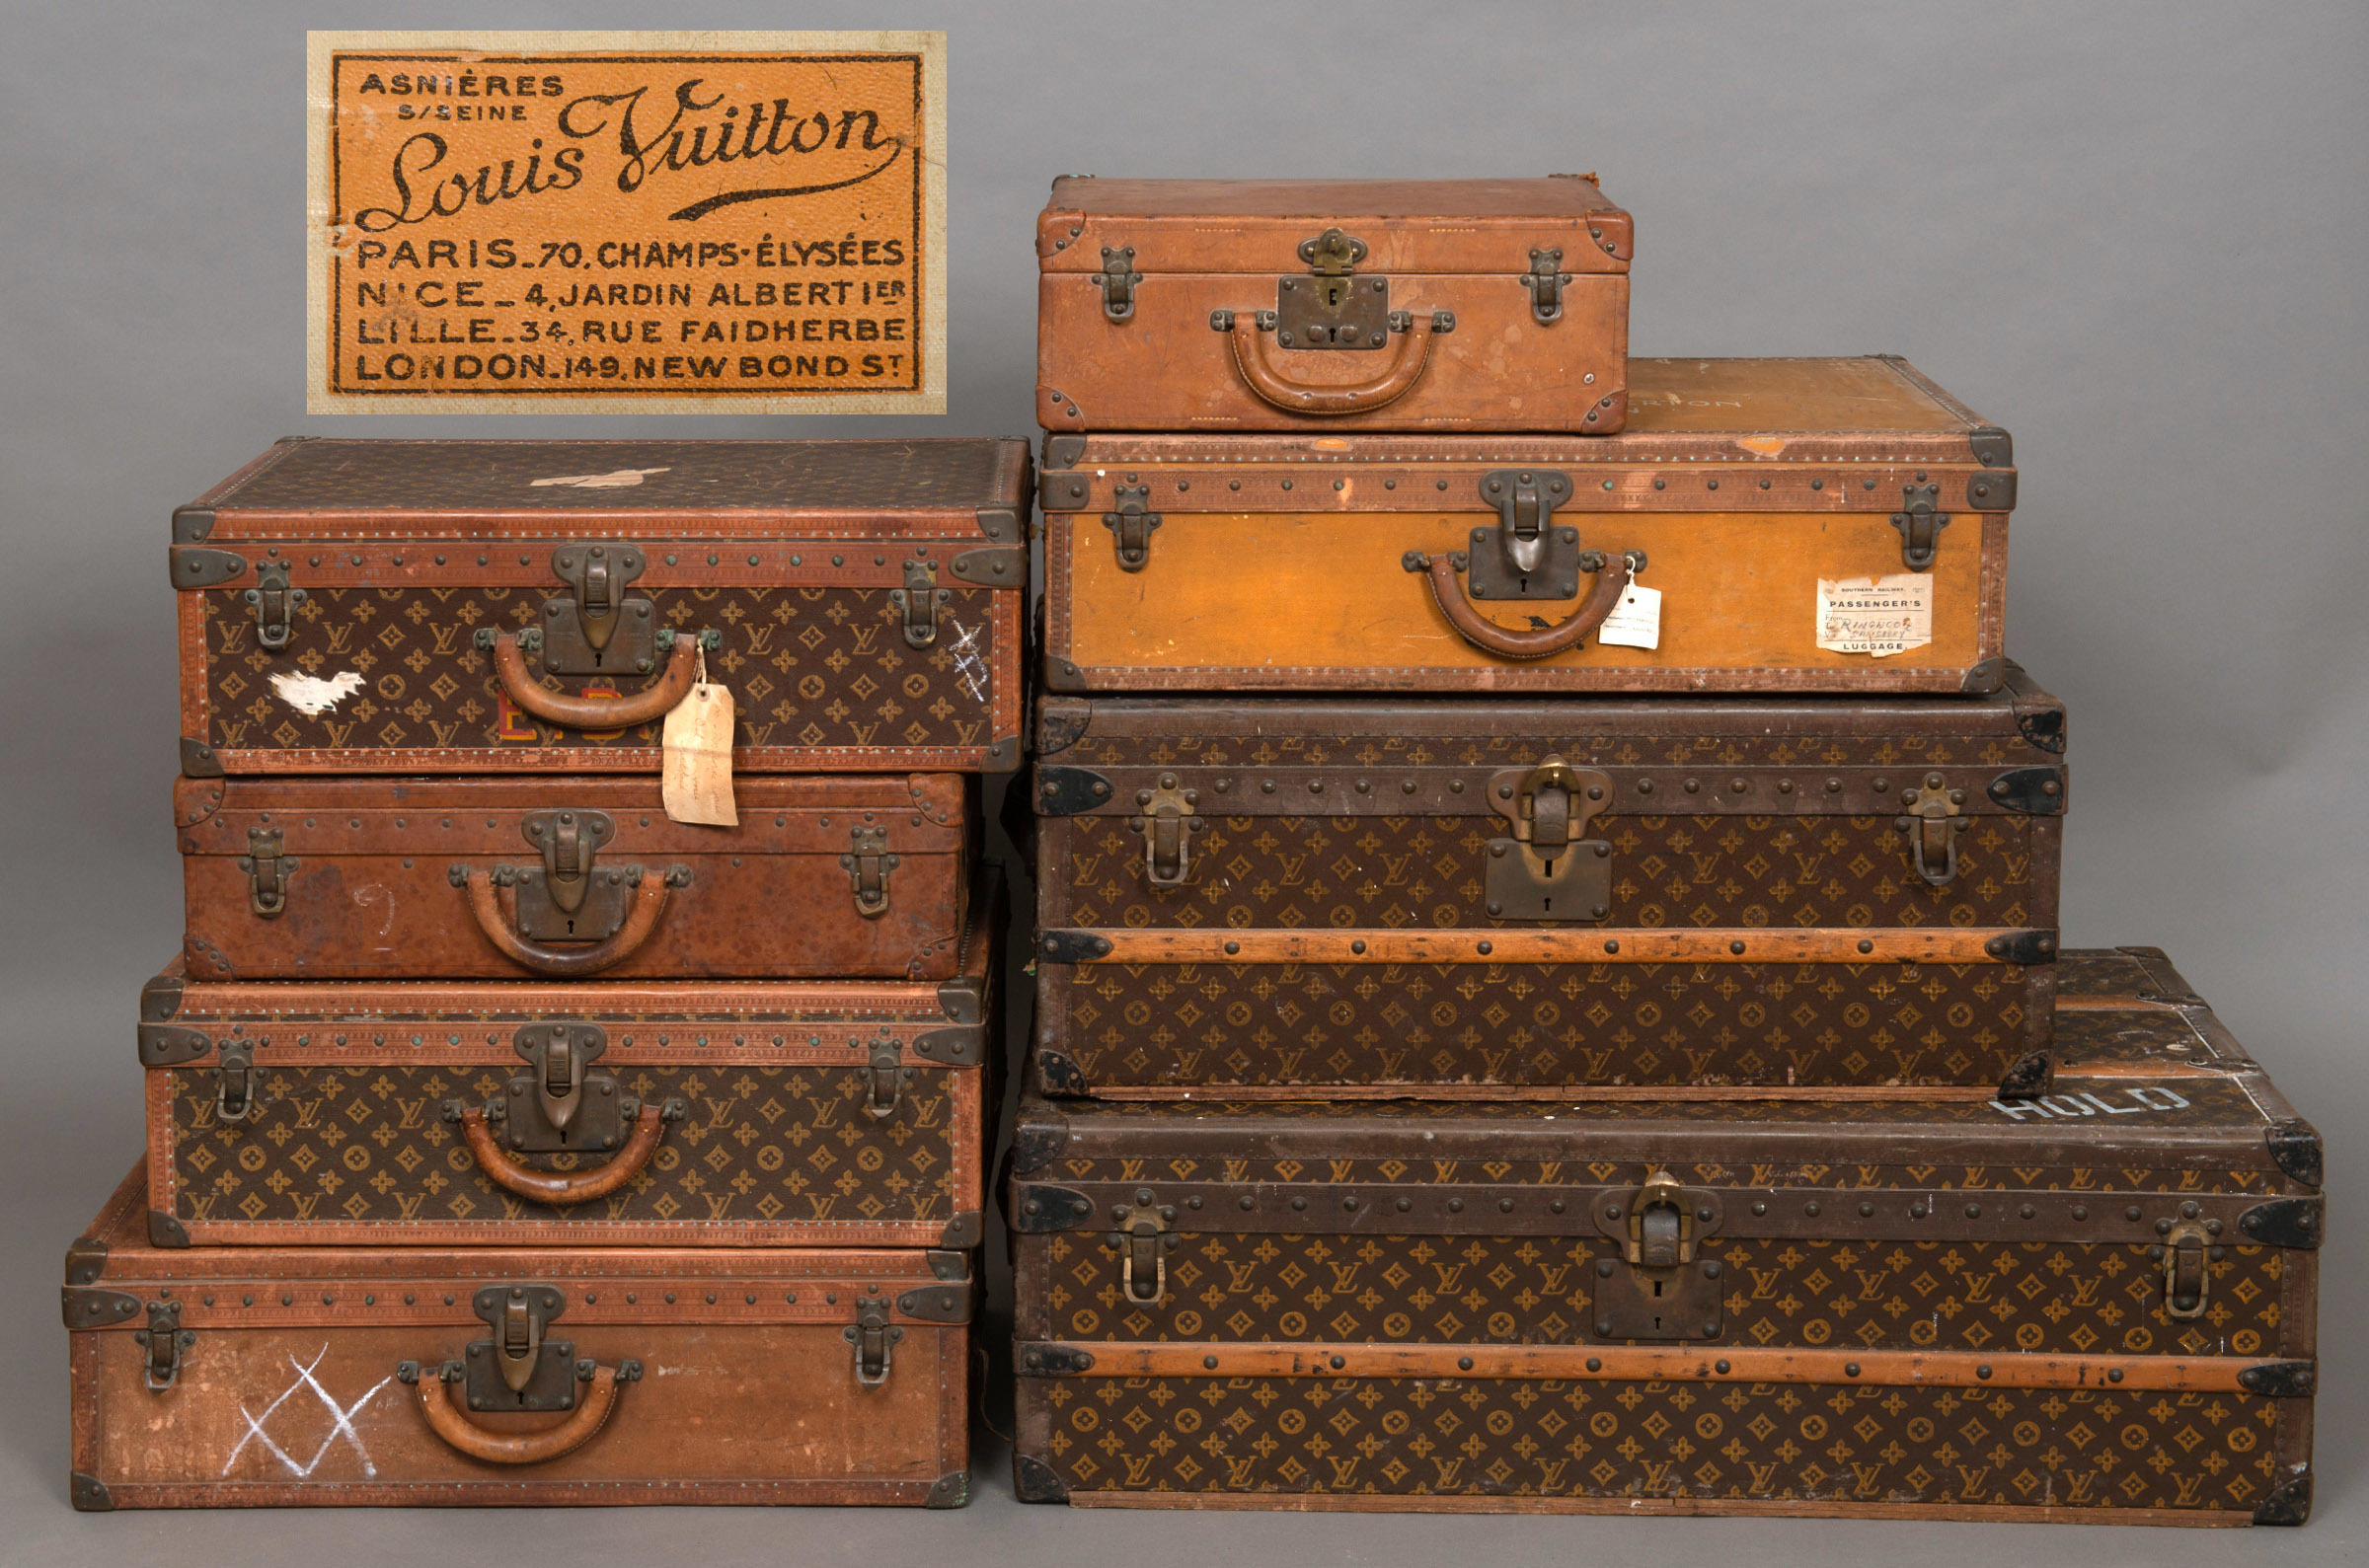 AUCTION: Remarkable collection of vintage Louis Vuitton luggage to be sold by Lawrences of Crewkerne